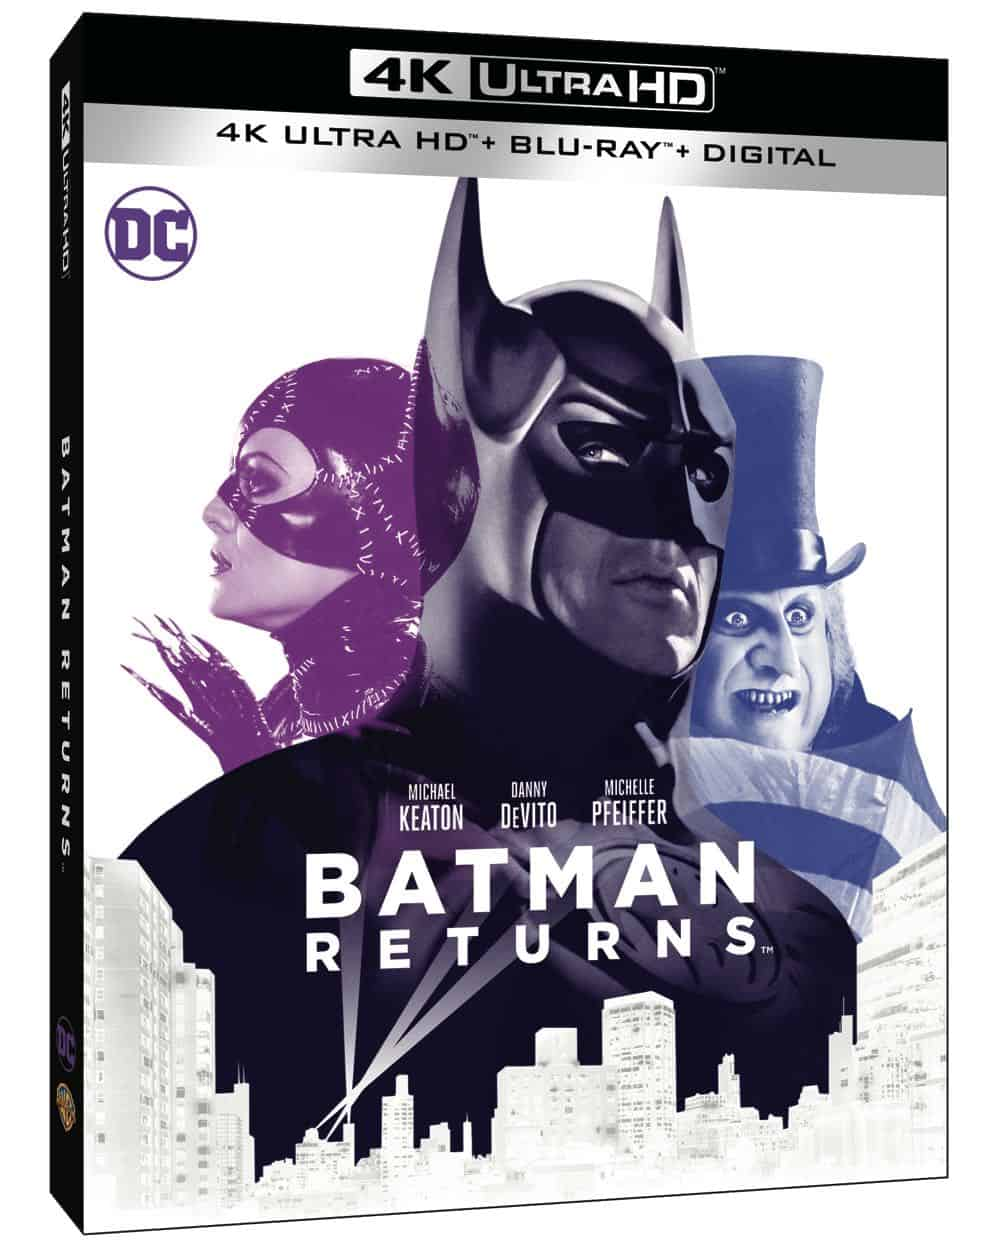 DCBATMAN RETURNS 1000735743 4K OSLV 3D FINAL Dom SKEW